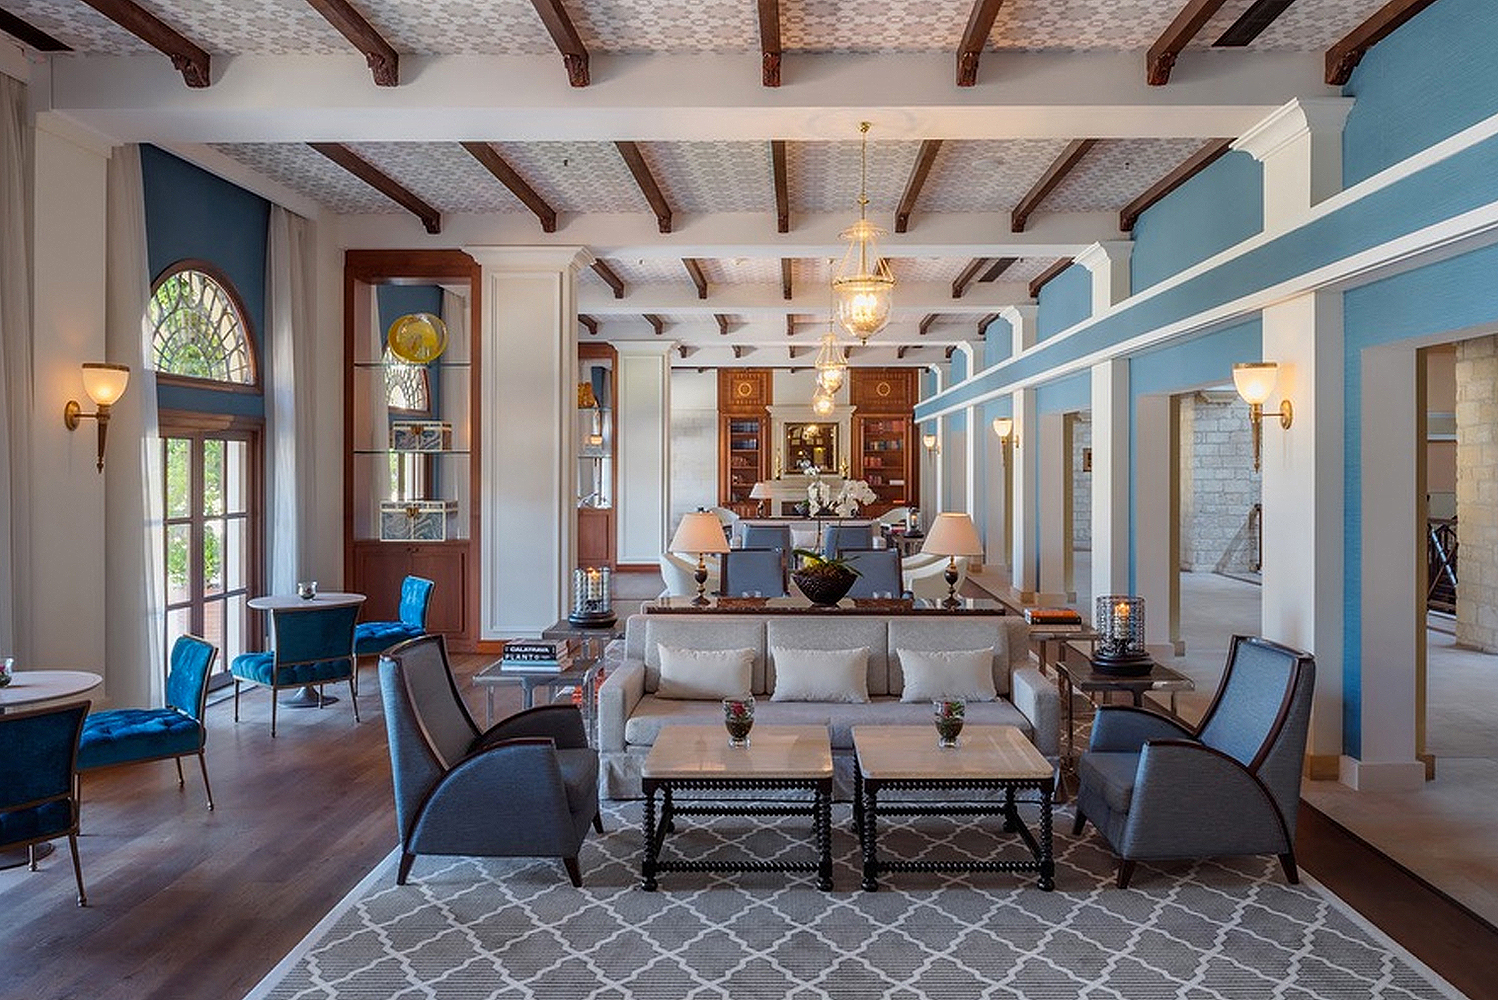 Architecture and interior design firm Wilson Associates unveiled the renovated Elysium Hotel in Cyprus.